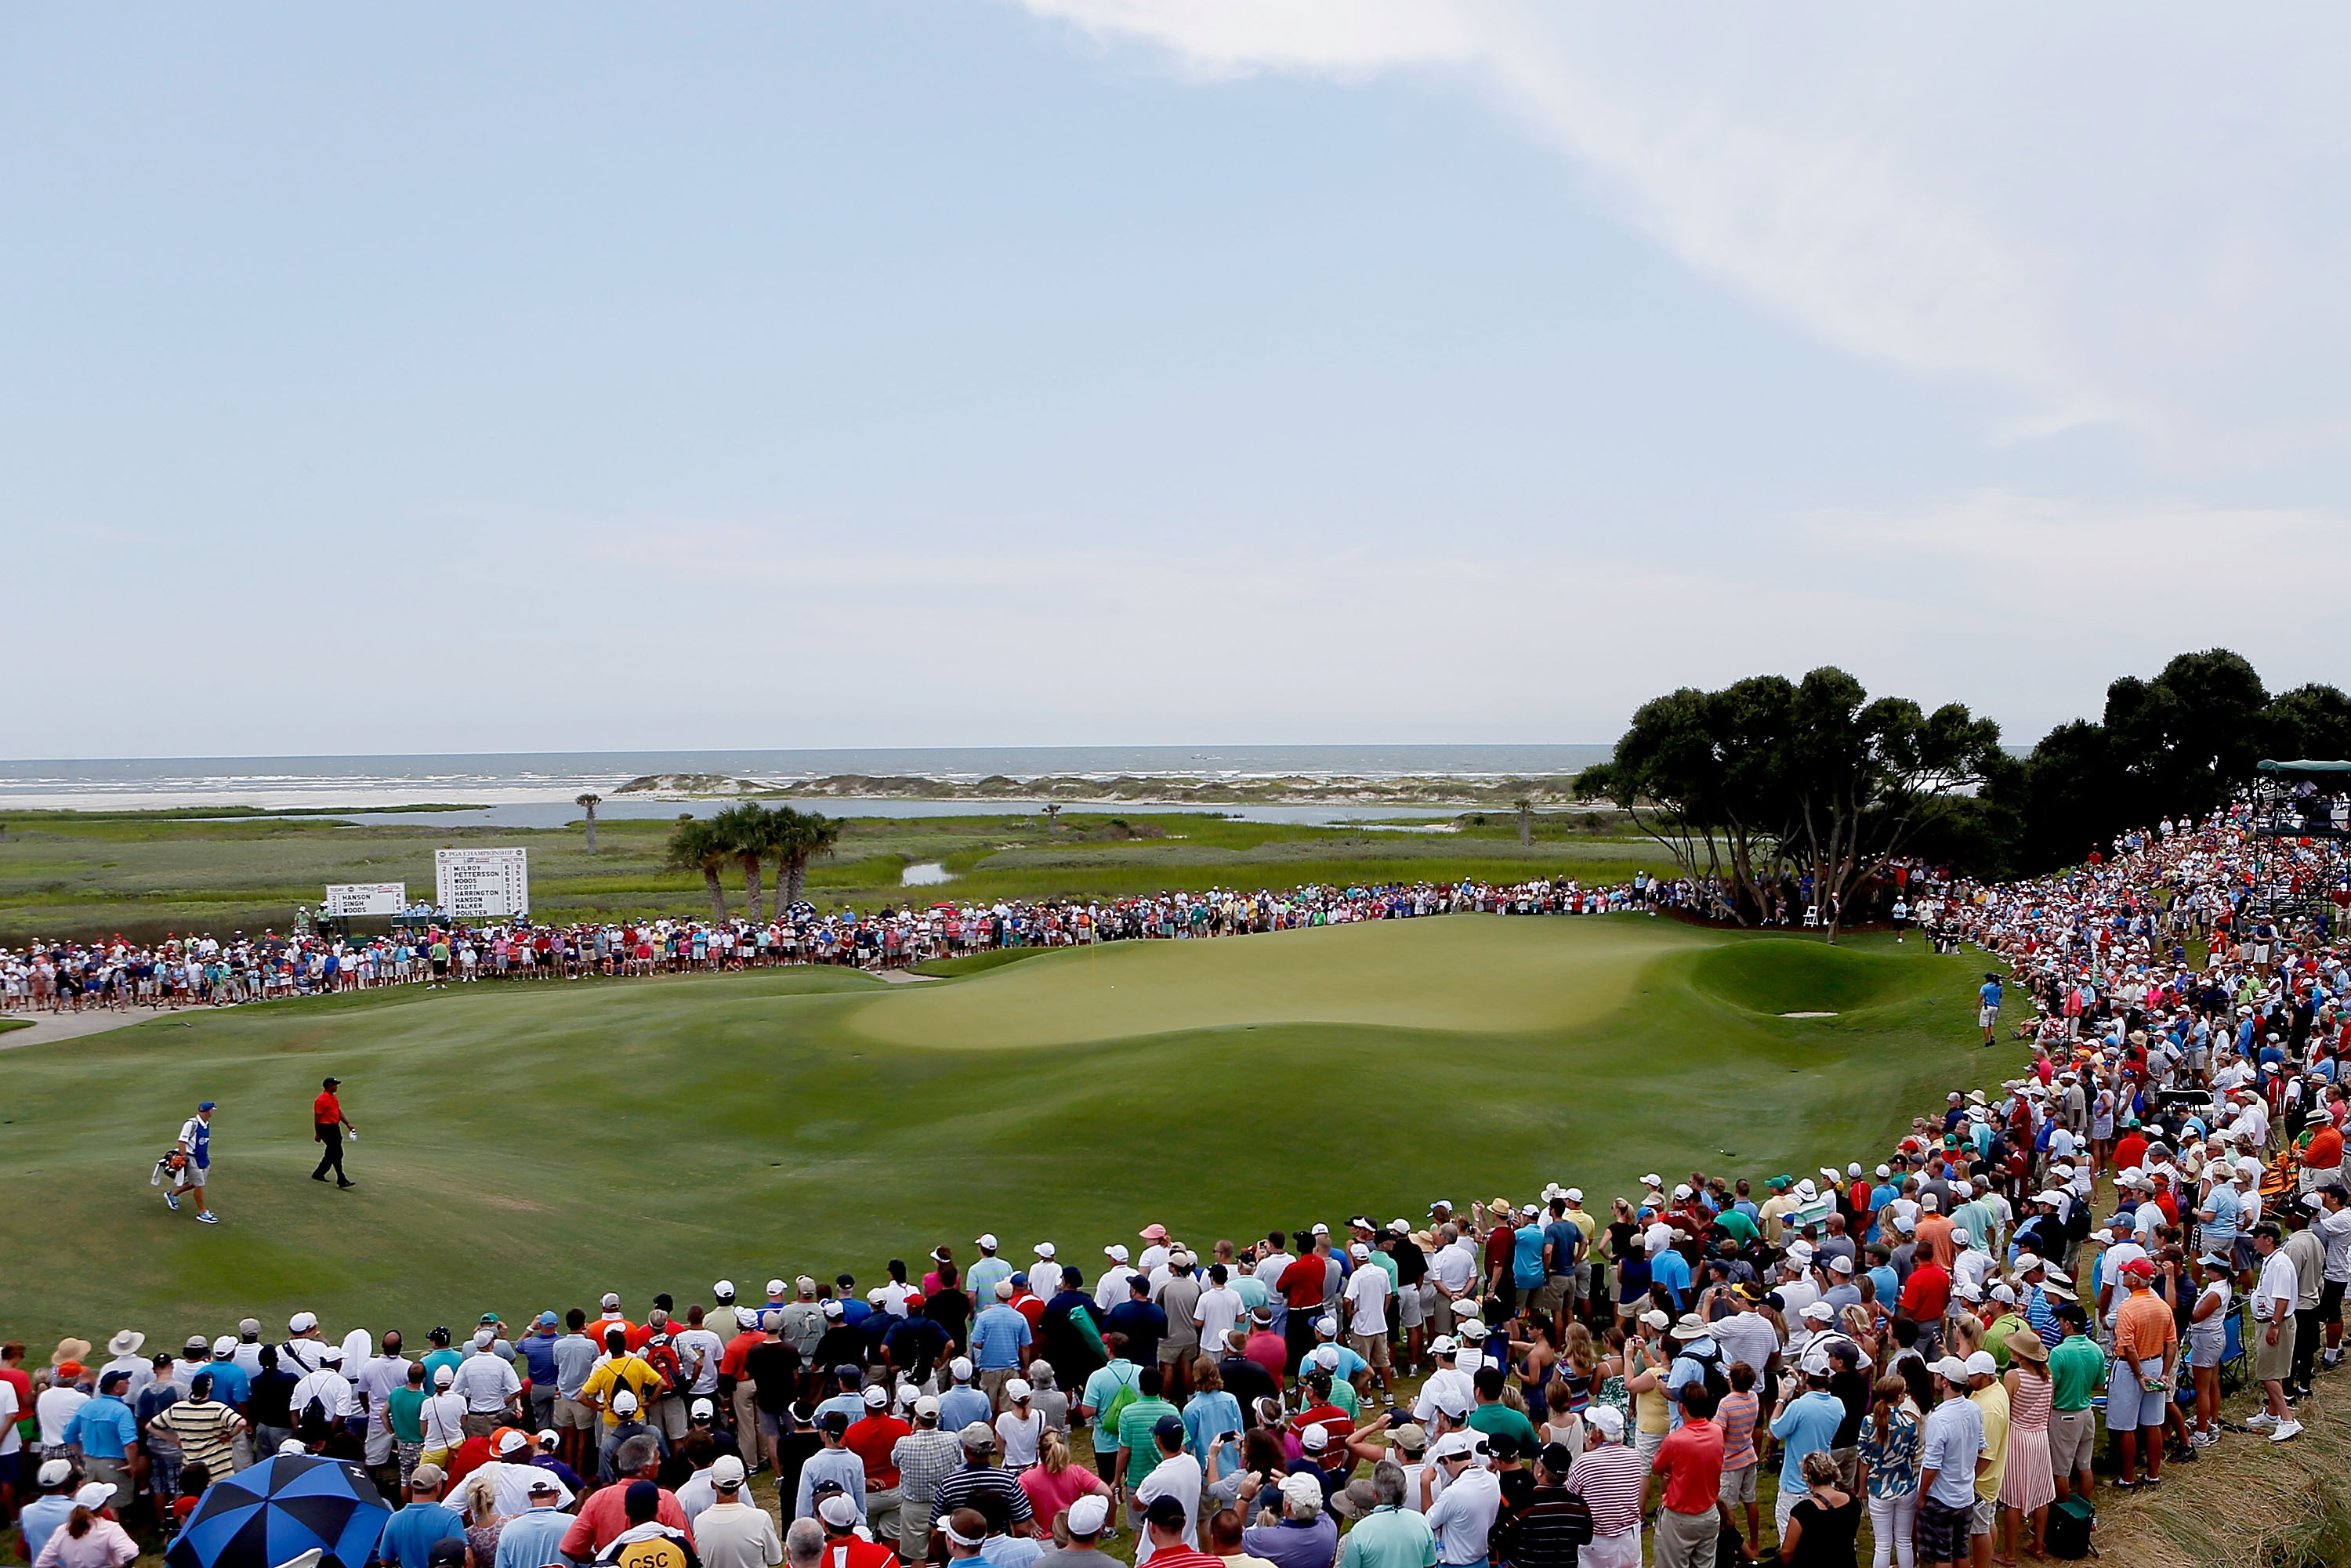 This year's finals will be held at the Ocean Course at Kiawah Island, site of the 2012 PGA Championship.